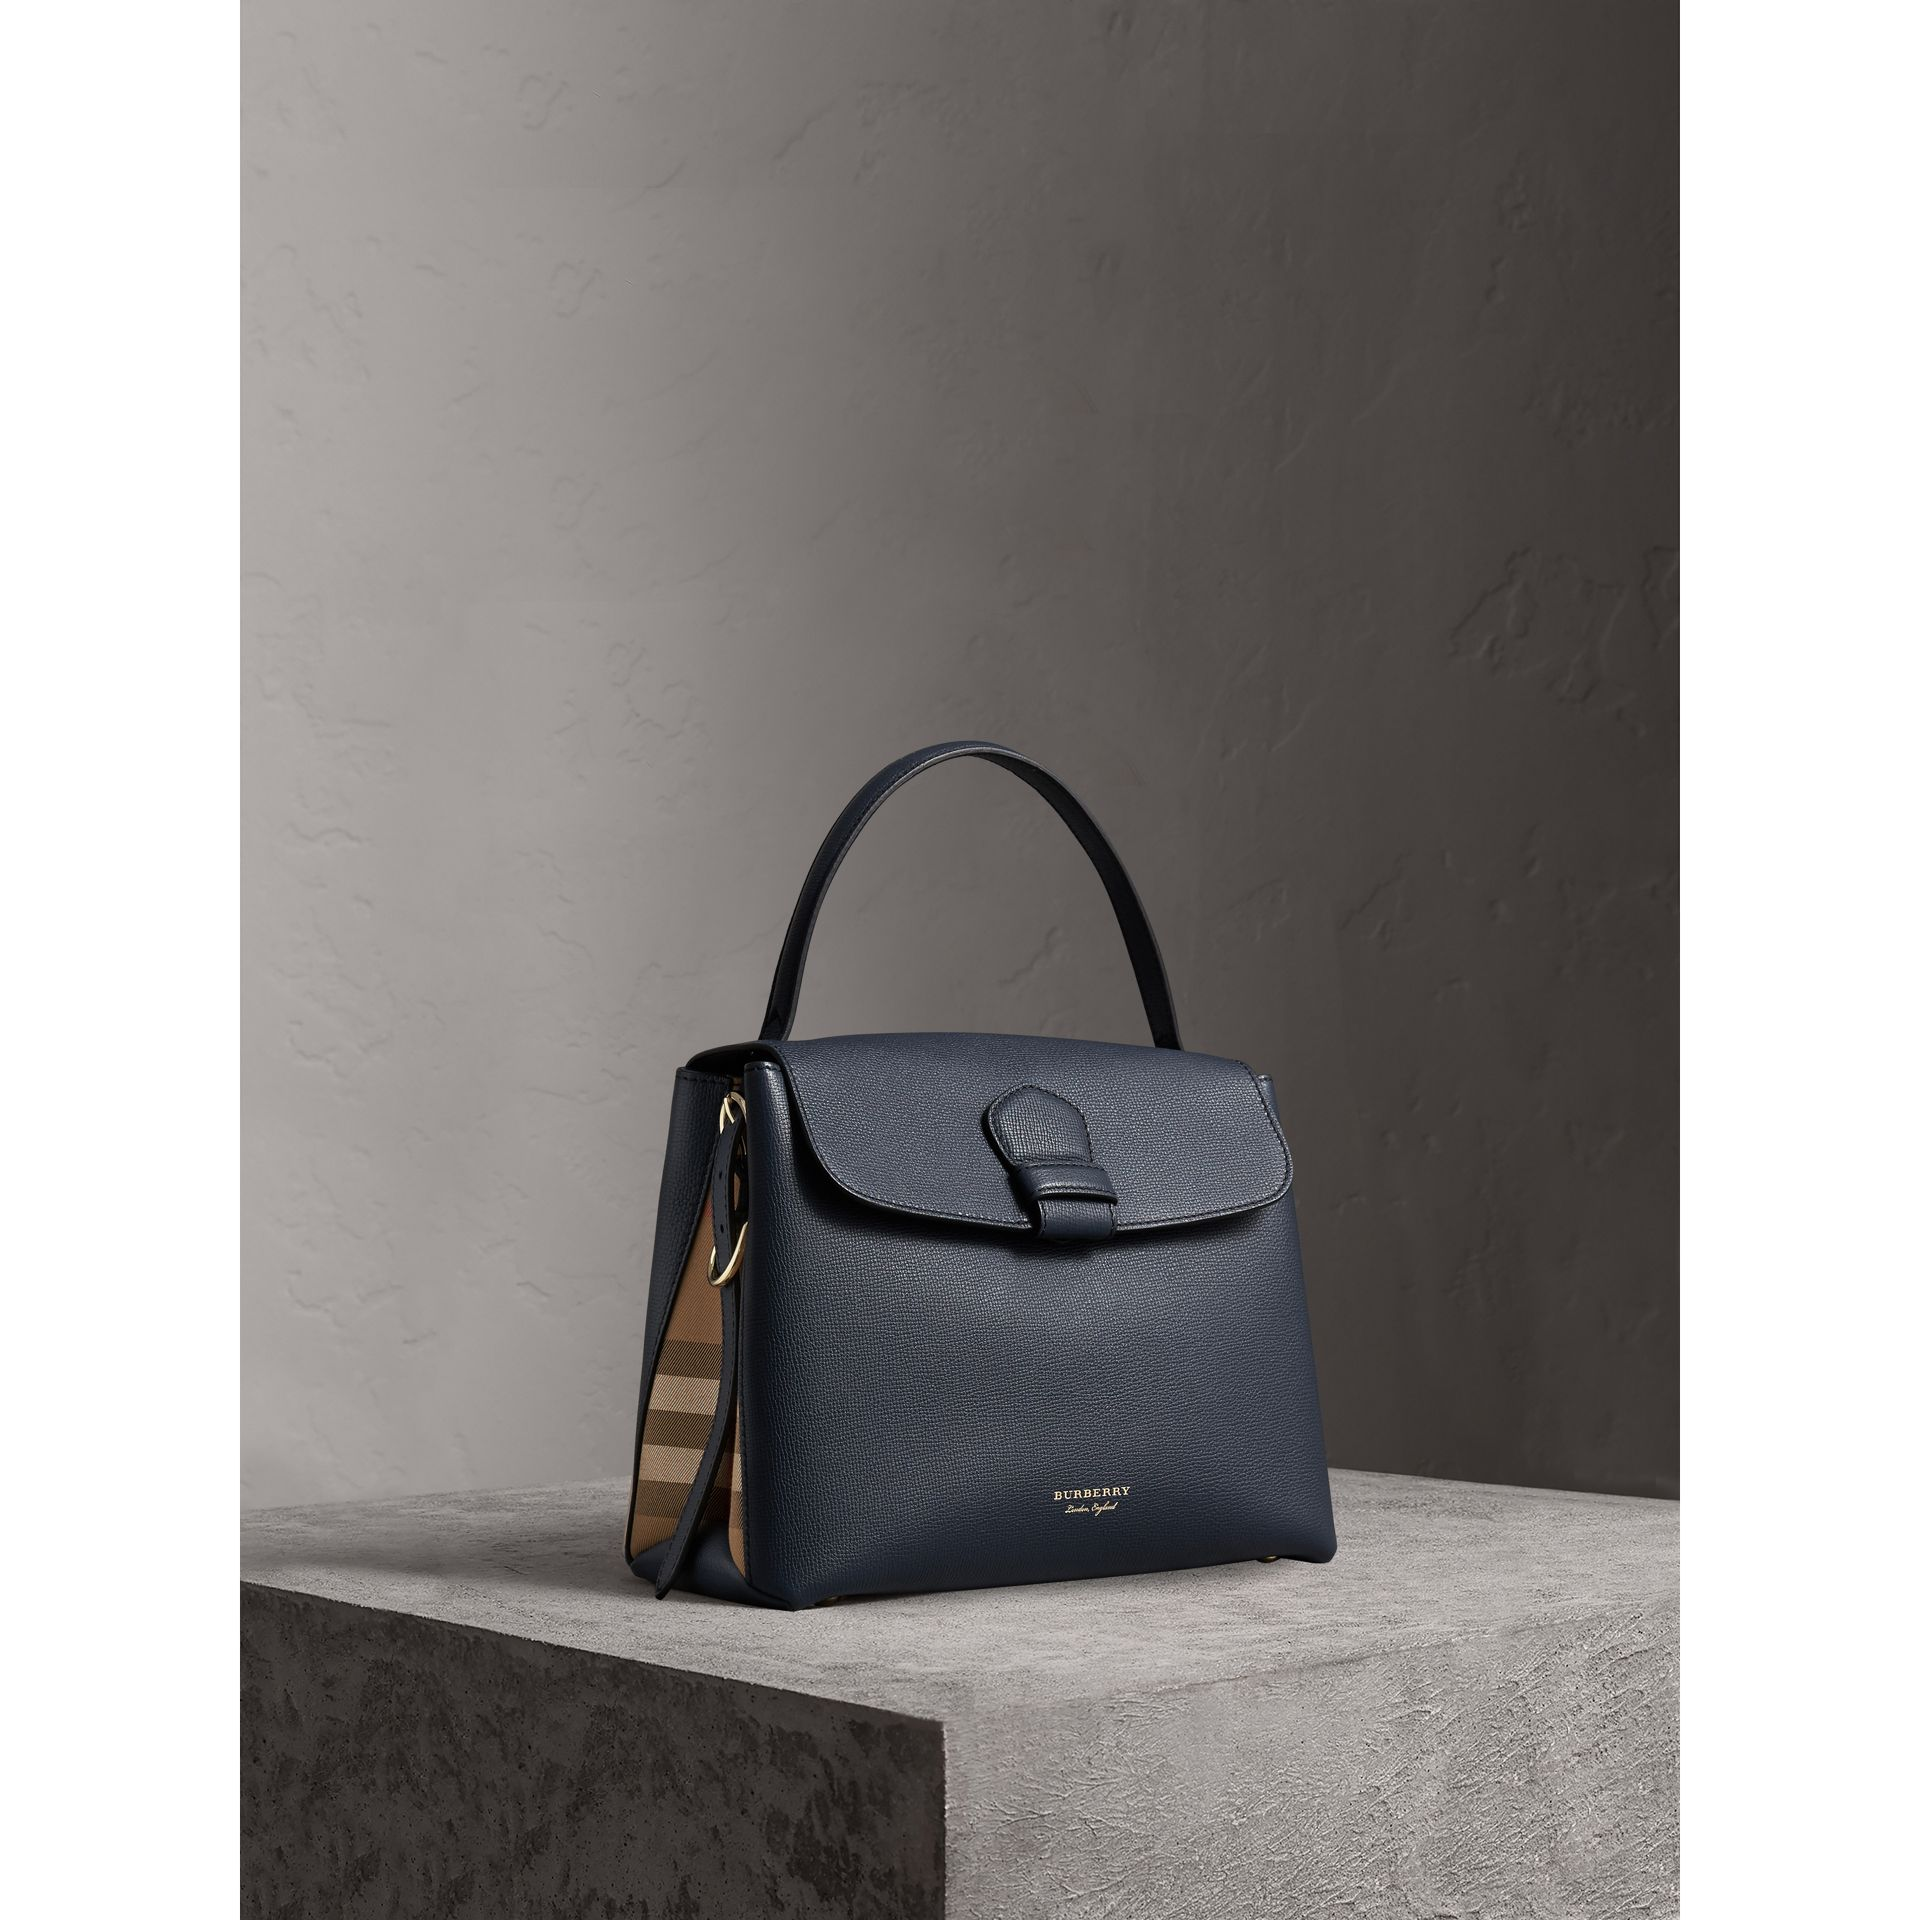 Medium Grainy Leather and House Check Tote Bag in Ink Blue - Women | Burberry Australia - gallery image 0